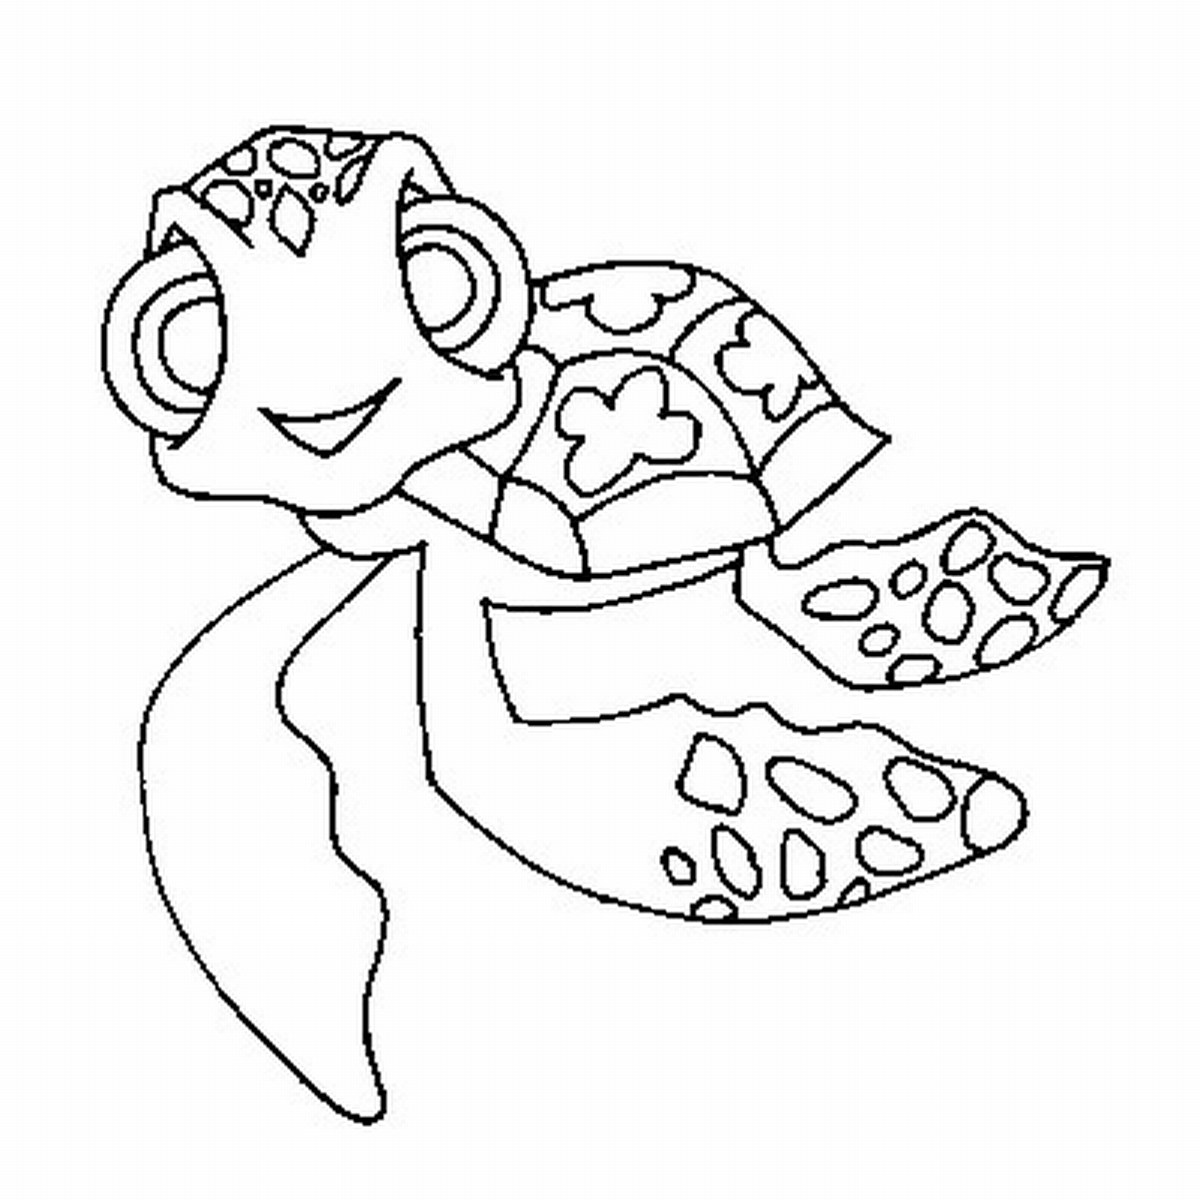 1200x1200 Trend Sea Turtle Coloring Sheet Pages For Kids